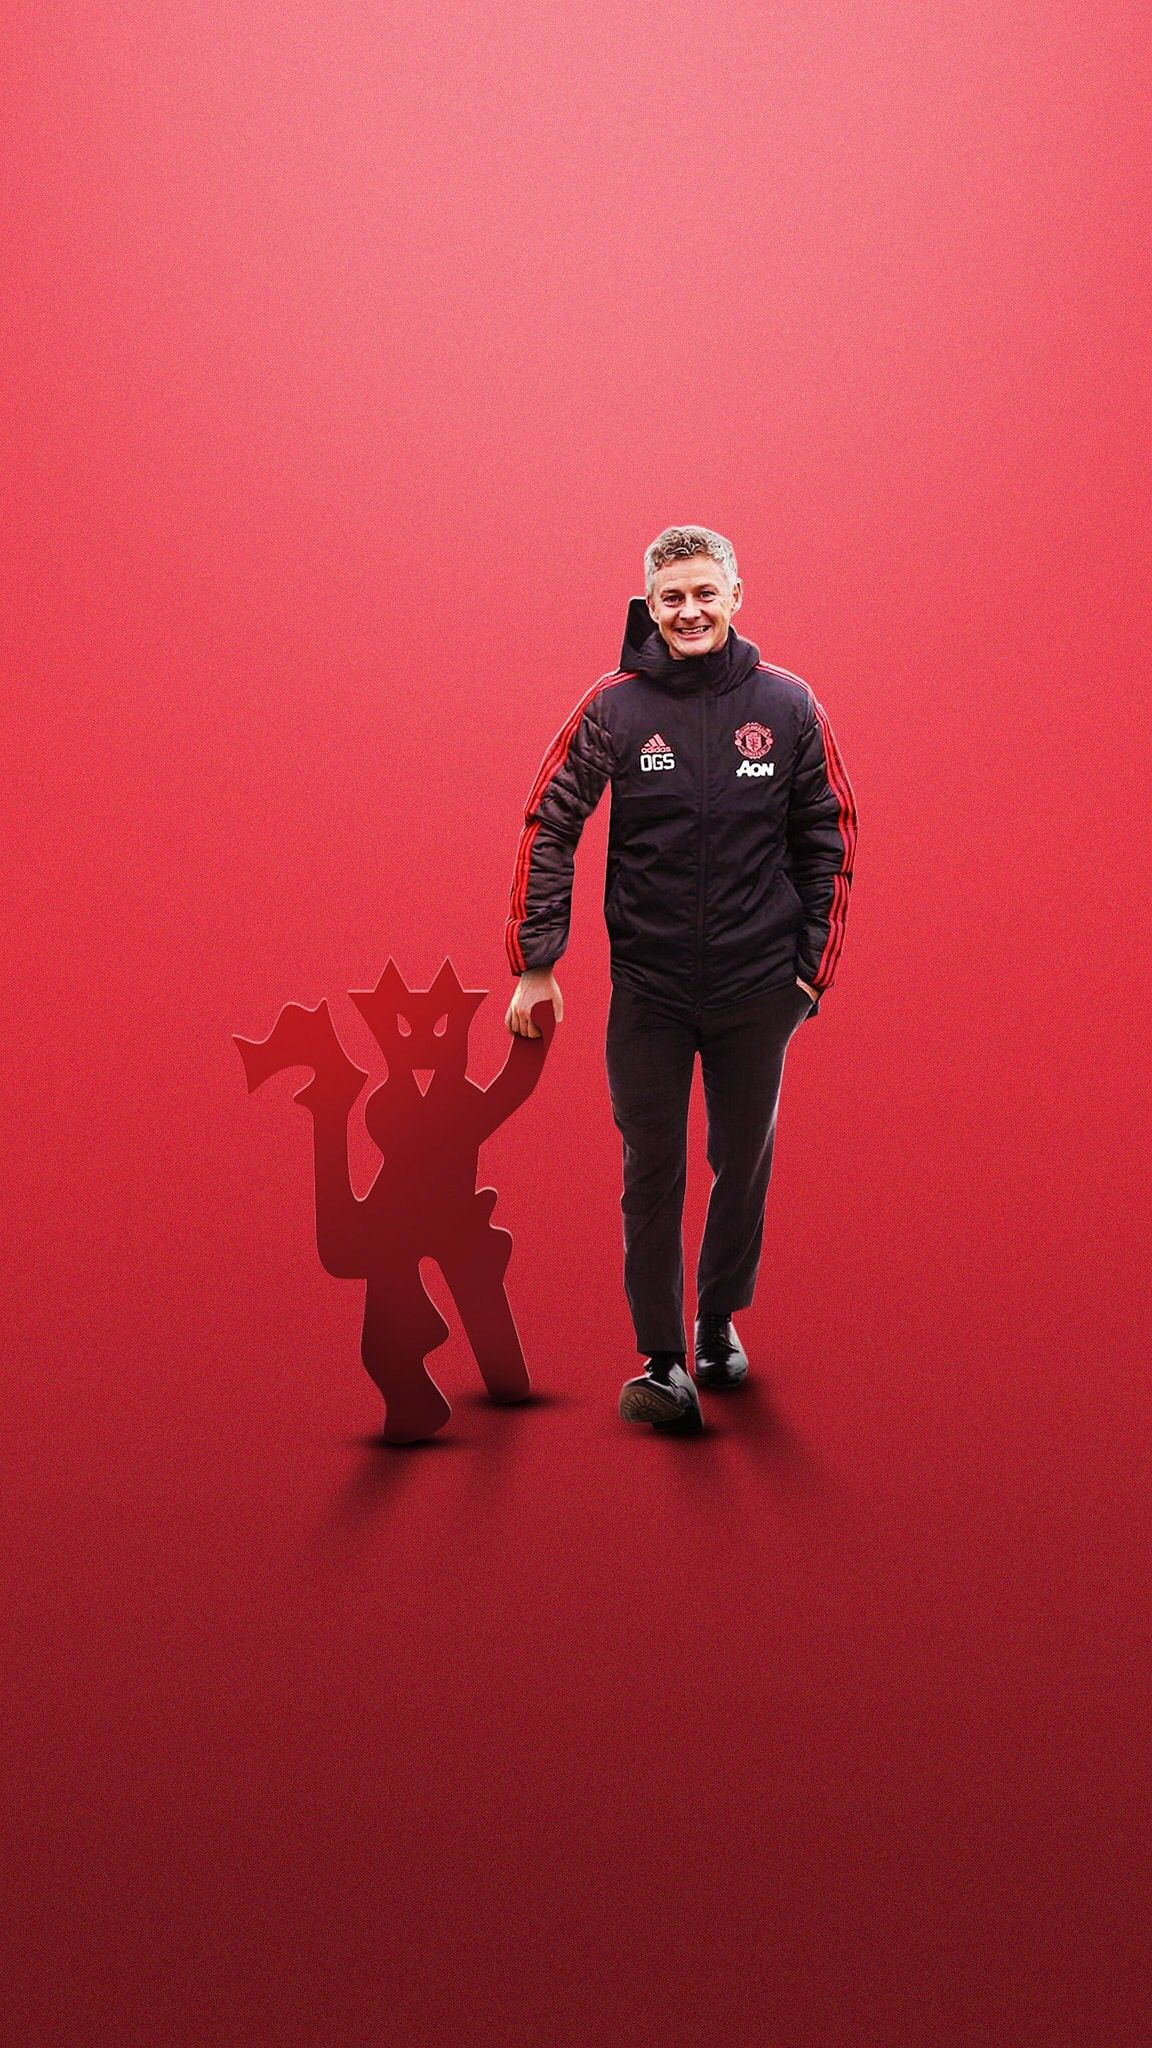 Manchesterunited Mufc Red Fred Solskjaer Love